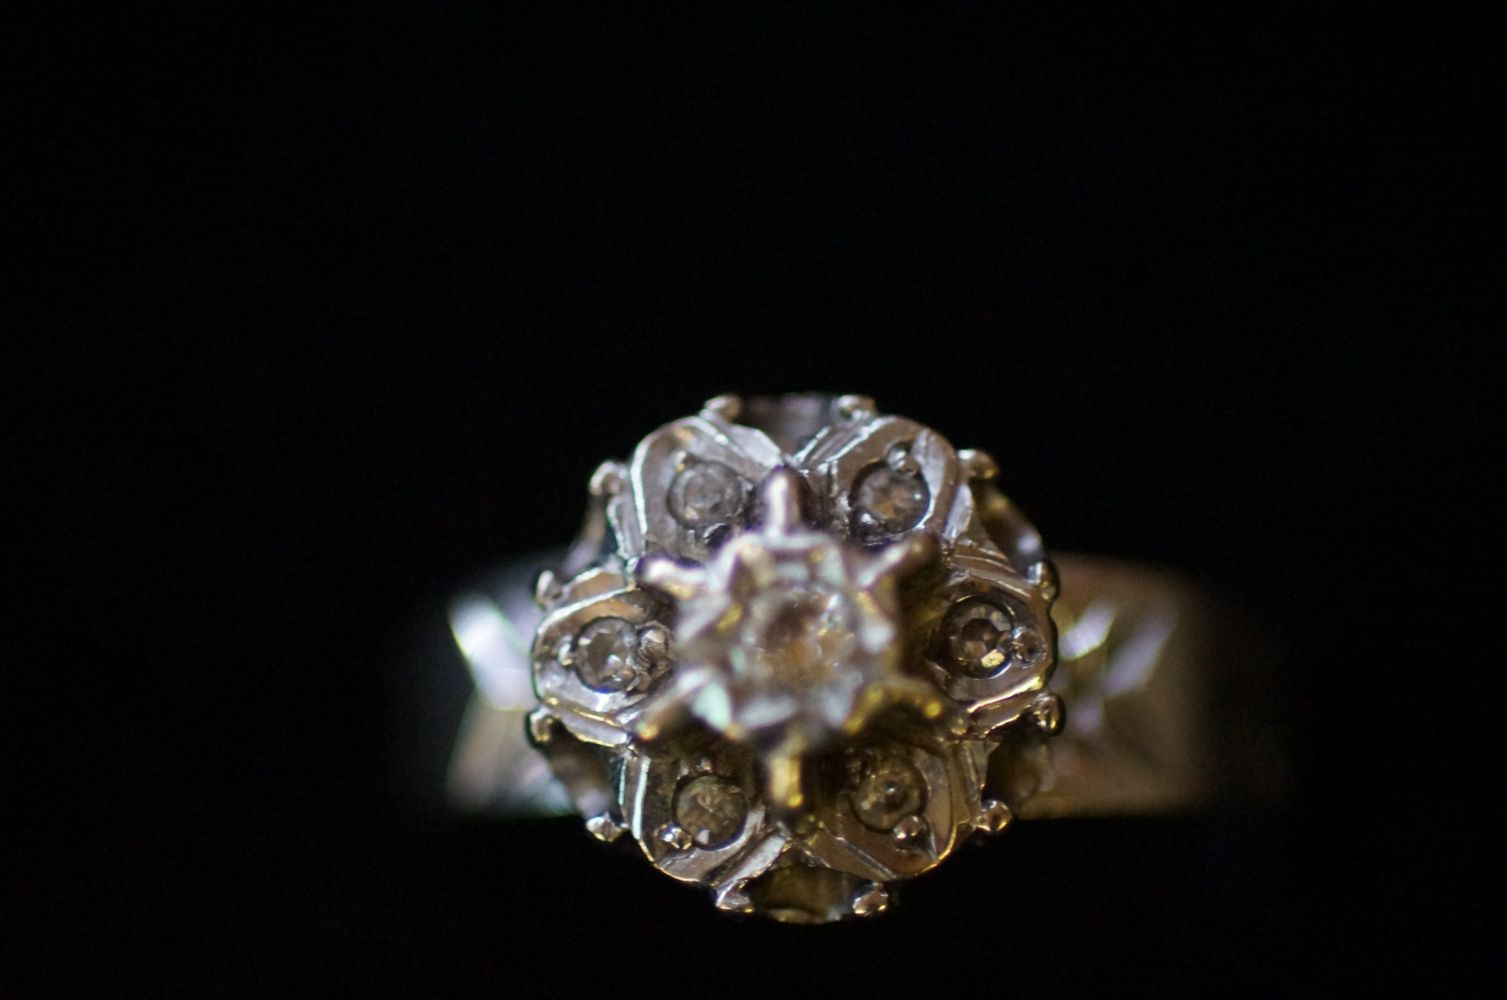 Jewellery auction - Diamonds, gold and silver